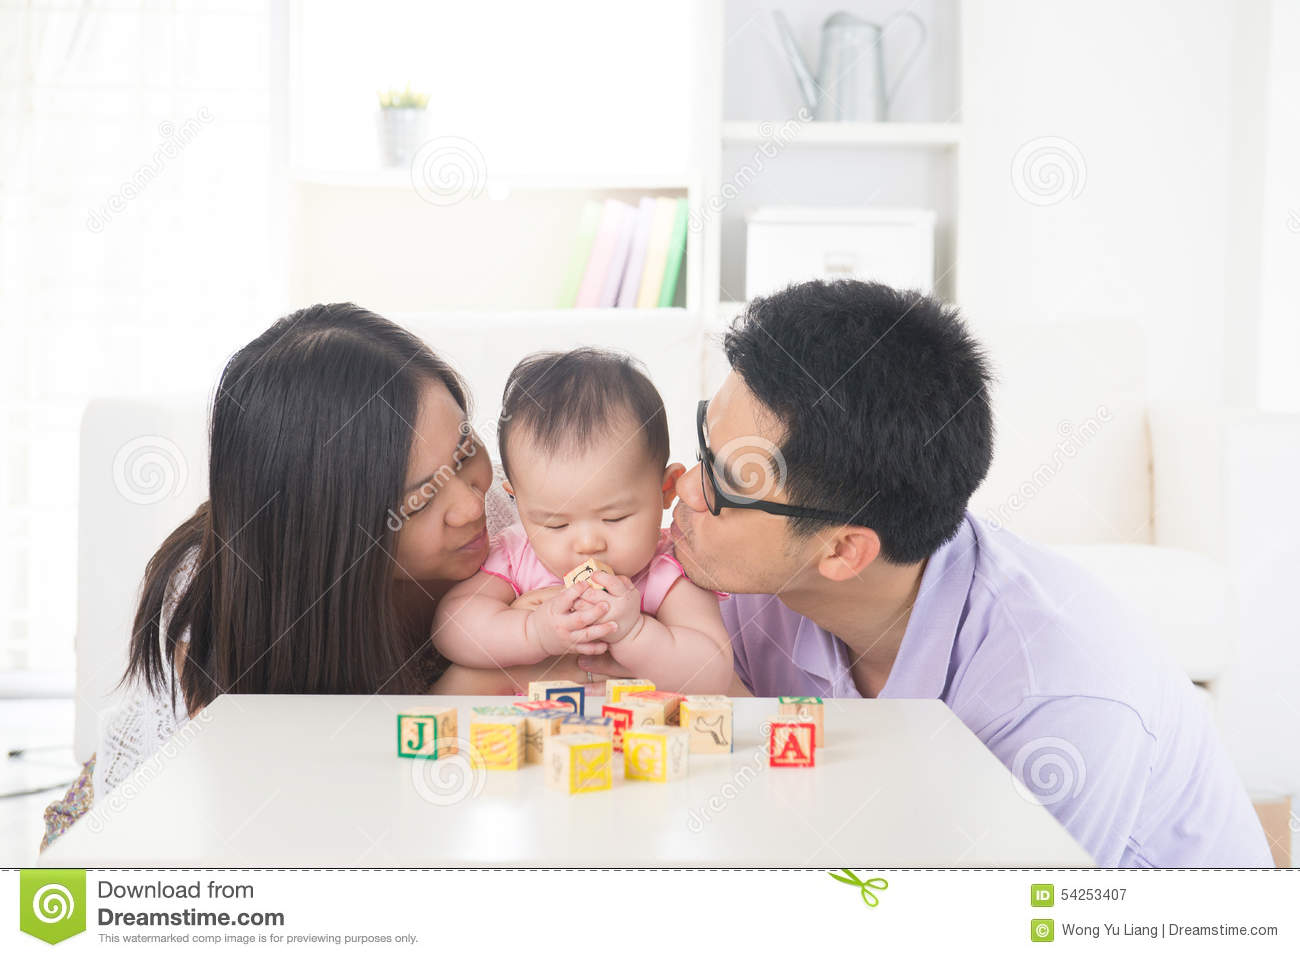 Asian parent playing with baby